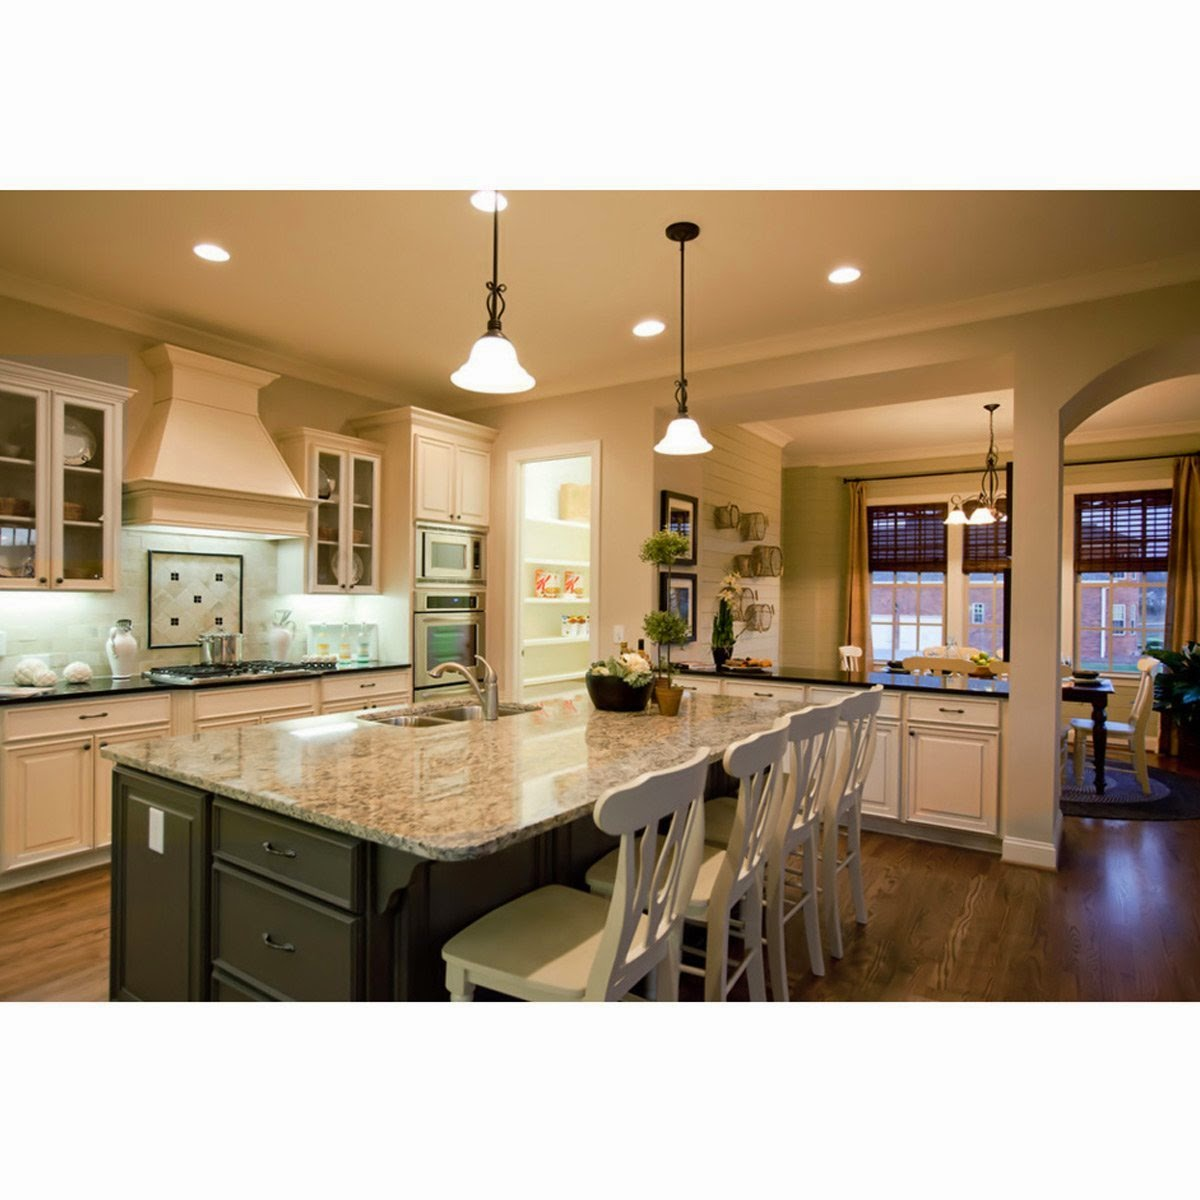 Lighting For The Kitchen: Electric Work: Recessed Lights